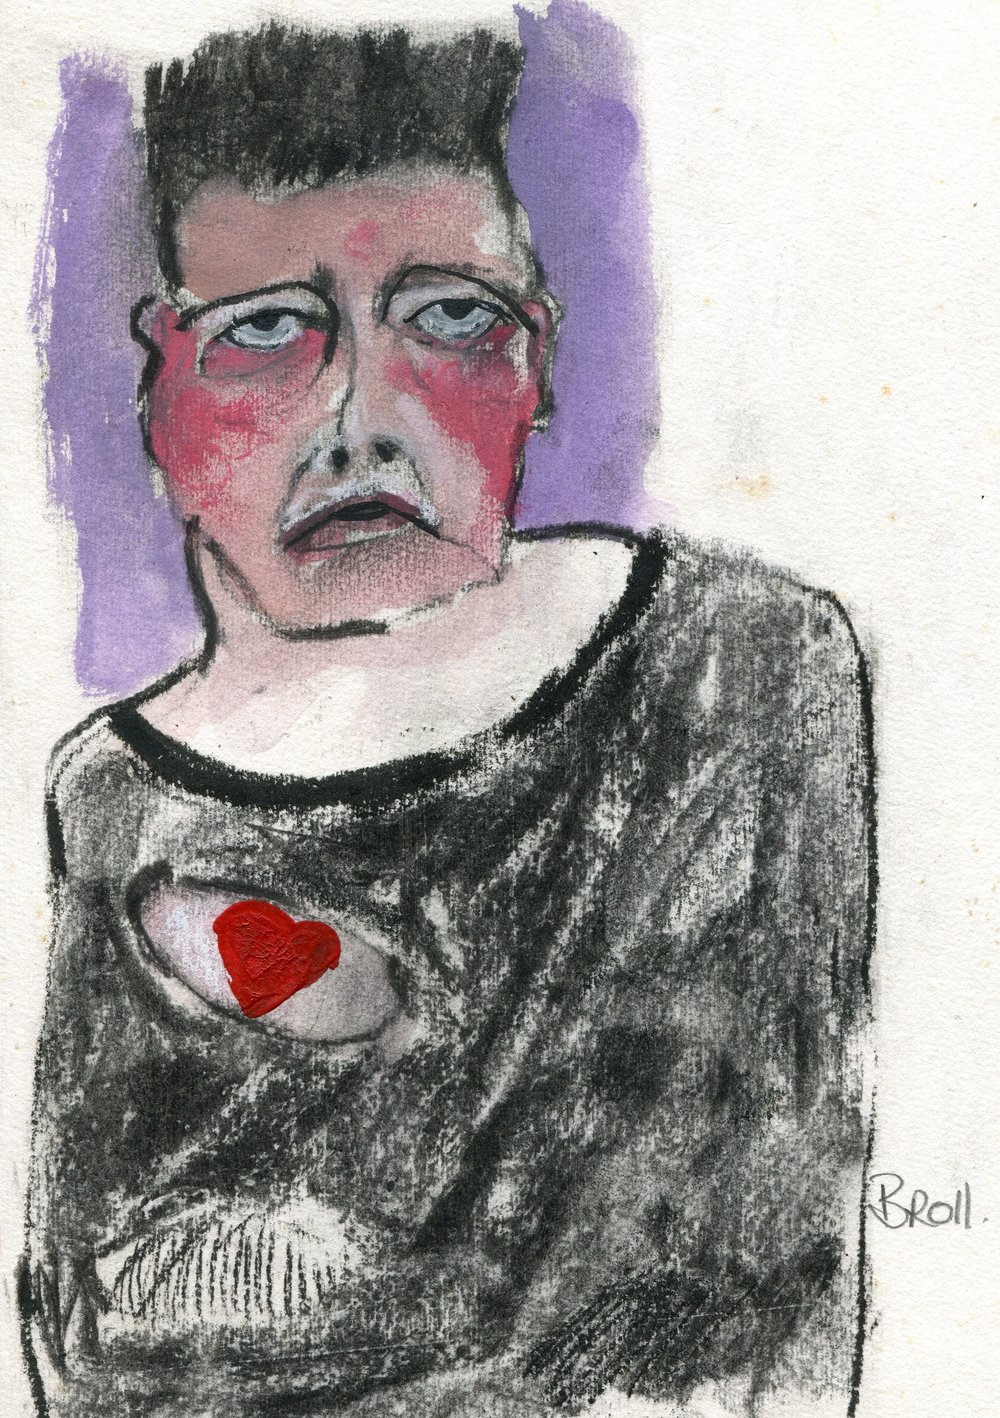 83a  Terri Broll  Hole in the heart  mixed media on paper